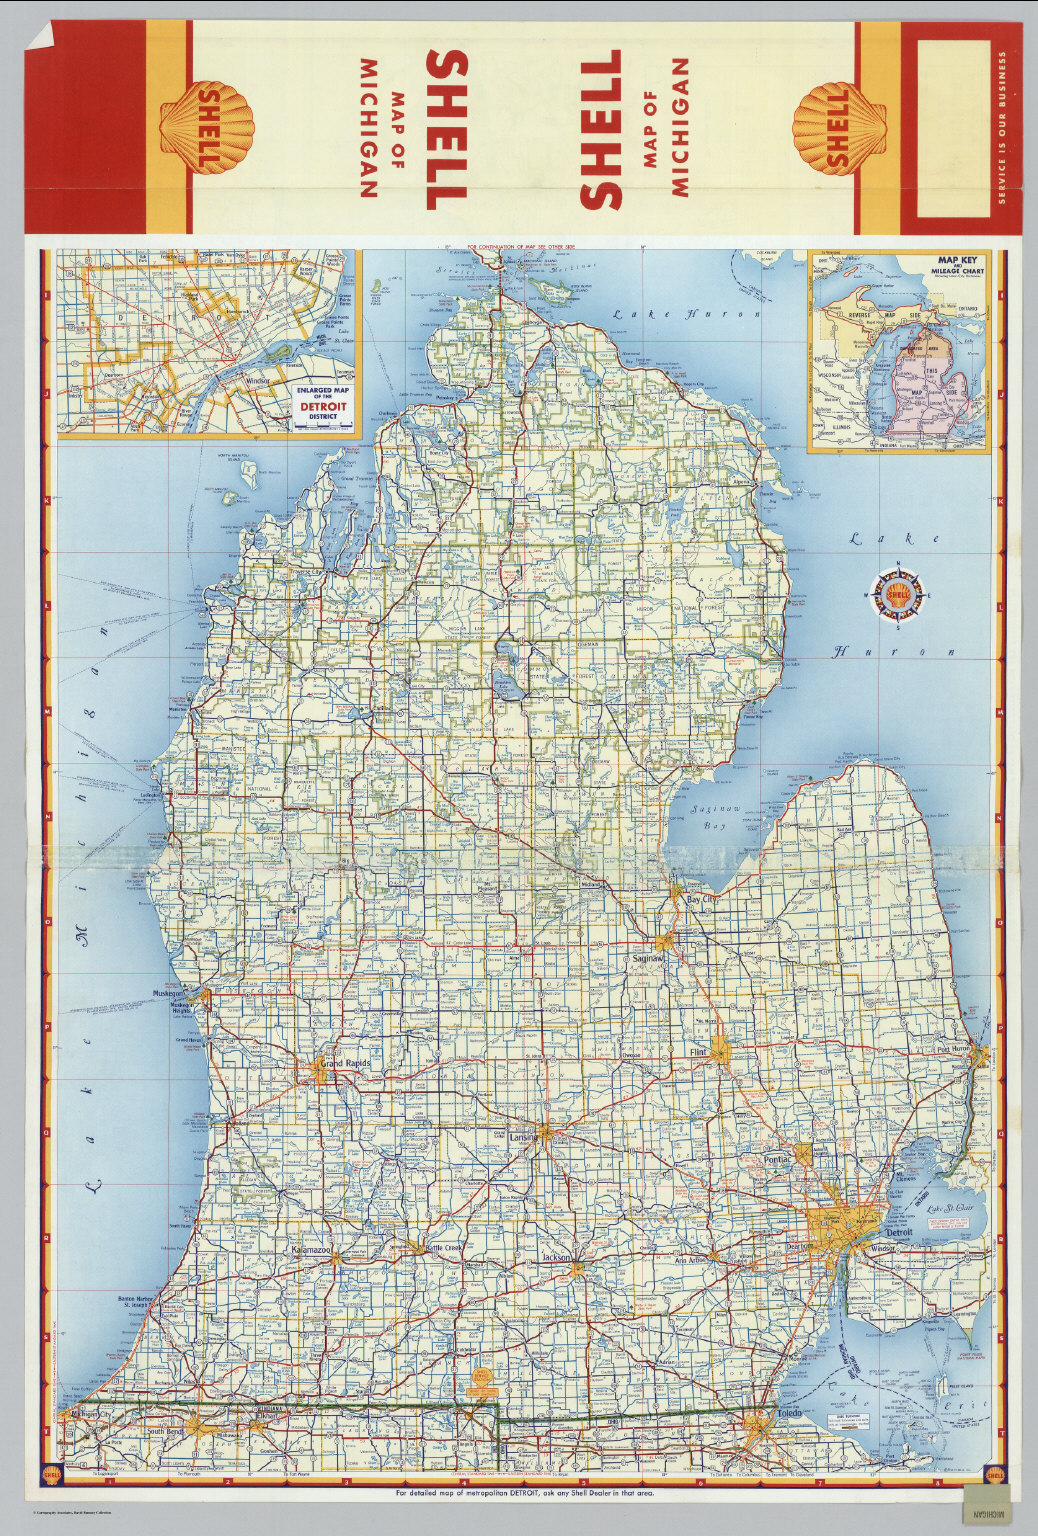 Michigan Highway Map Images